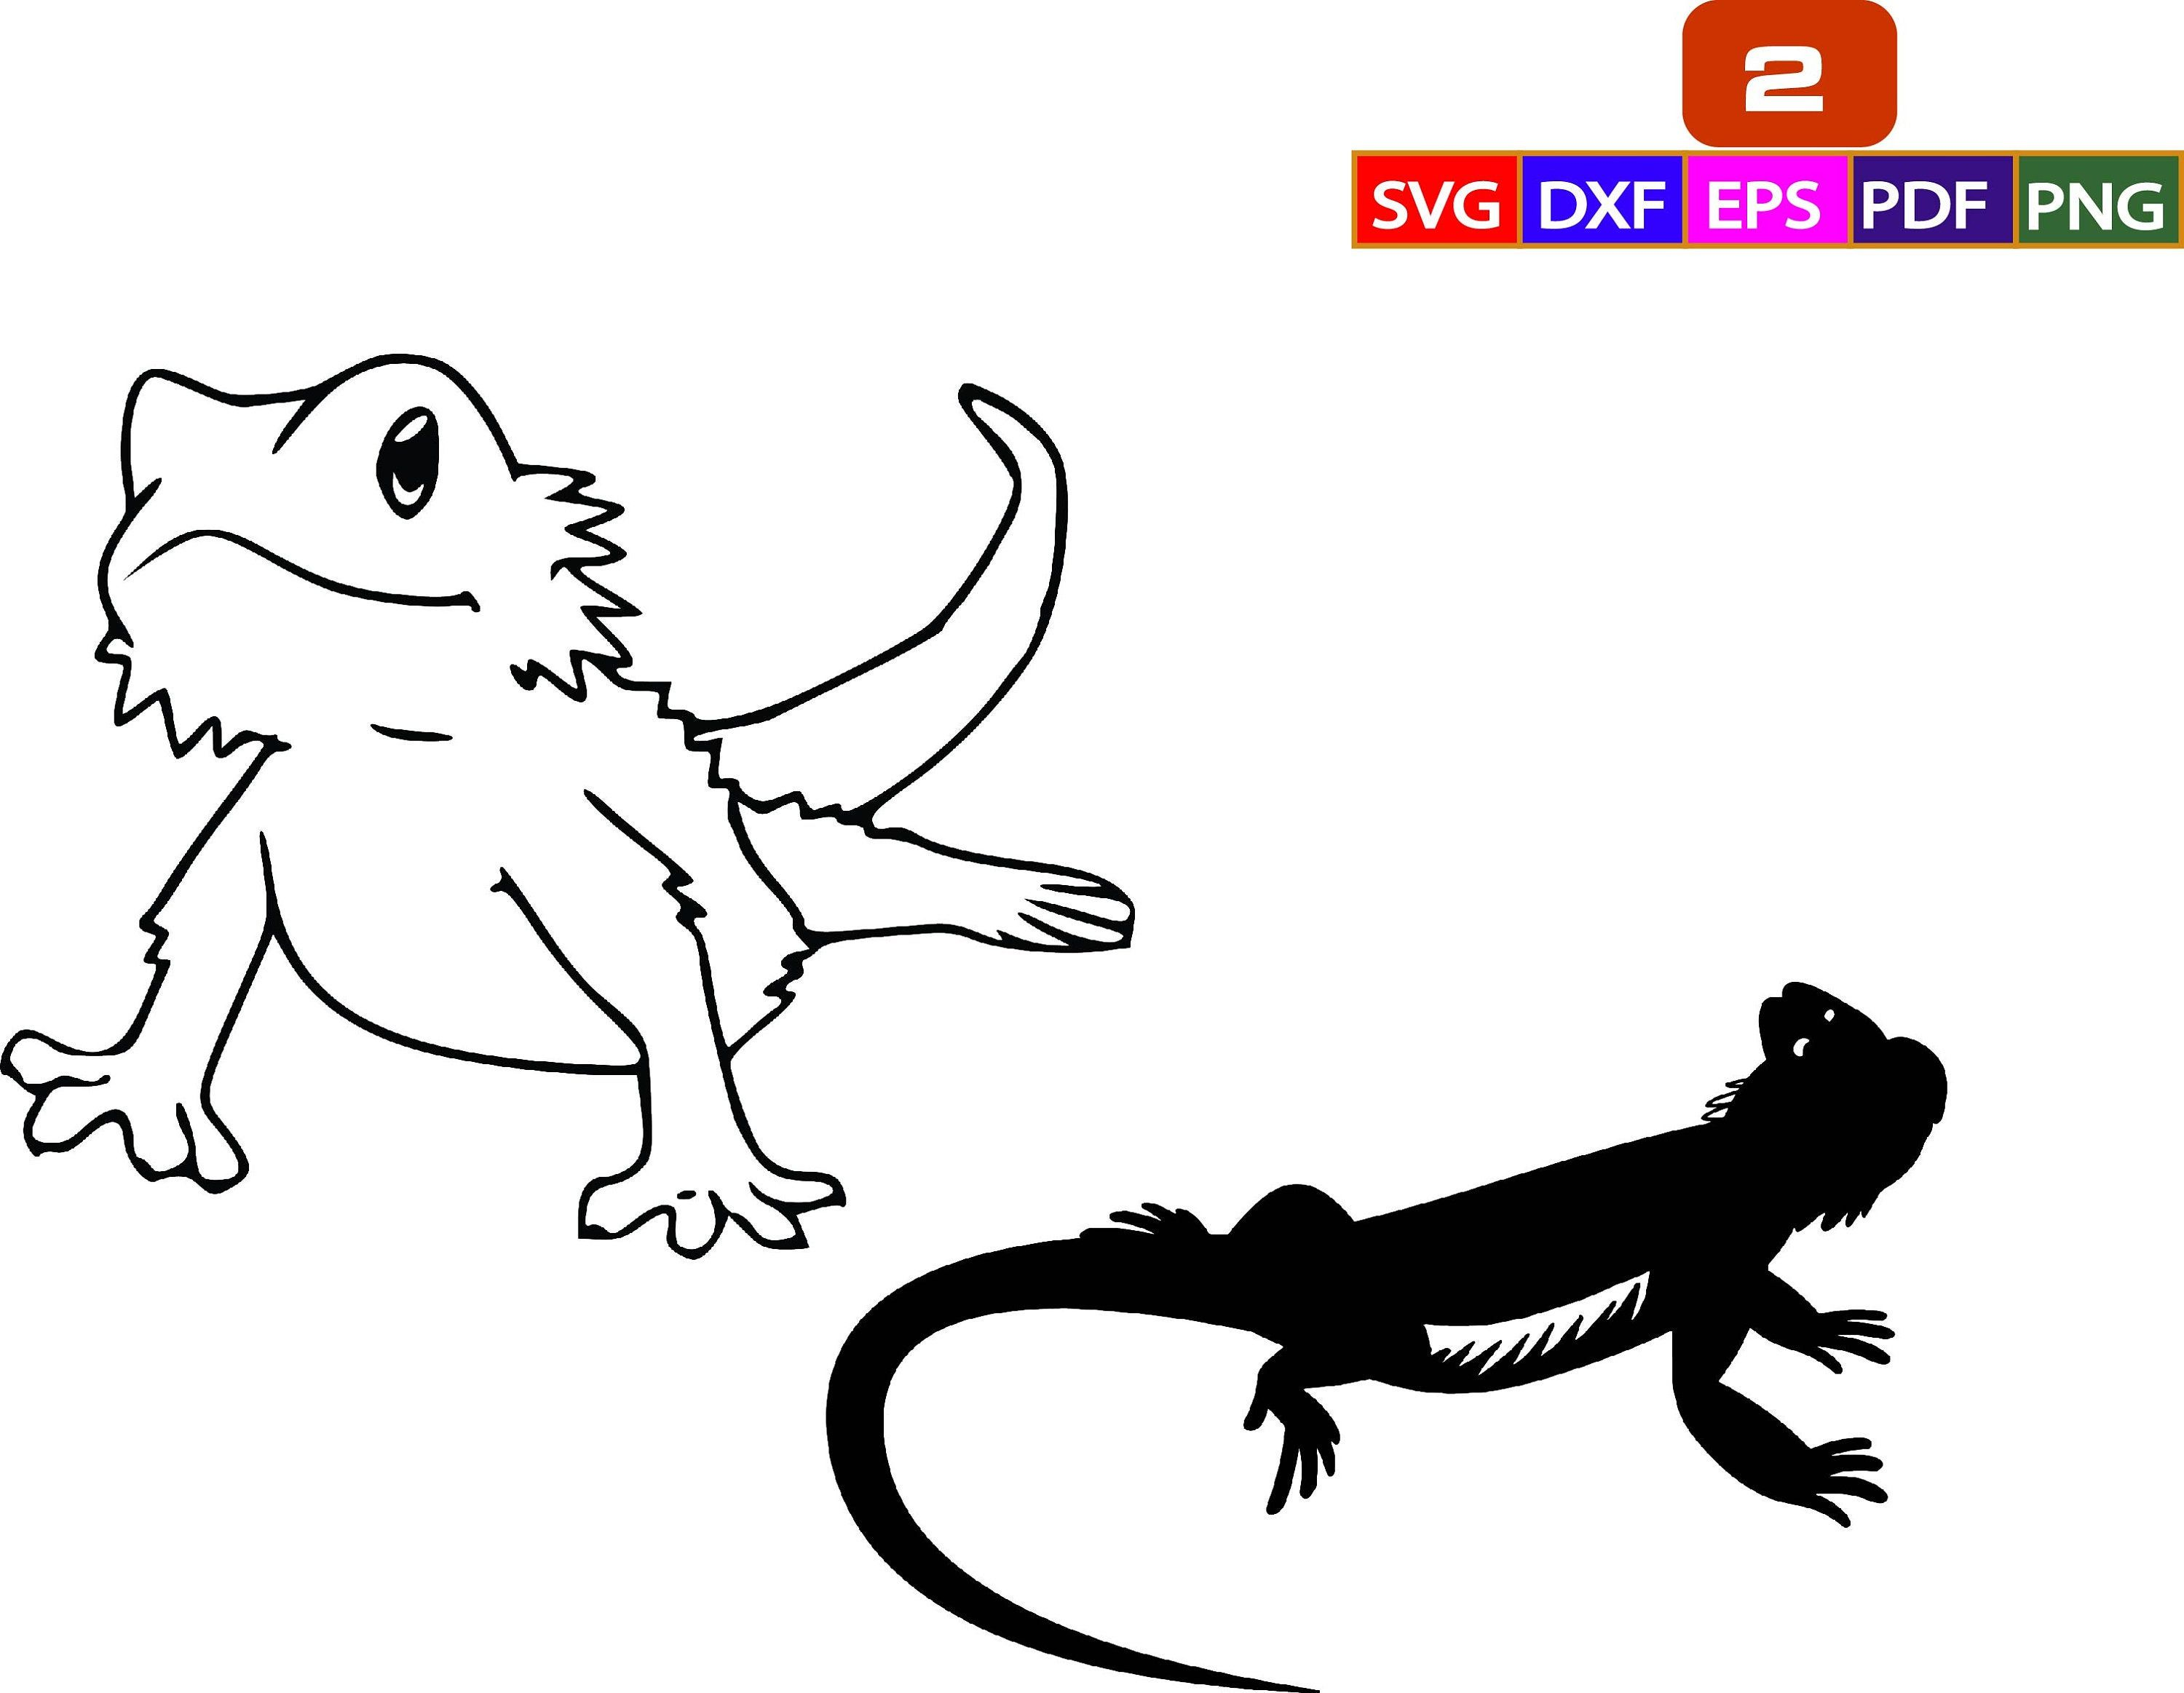 Bearded Dragon Iguana Svgbearded Dragon Svgsvg Png Clipart Etsy In 2021 Bearded Dragon Dragon Silhouette Bearded Dragon Tattoo